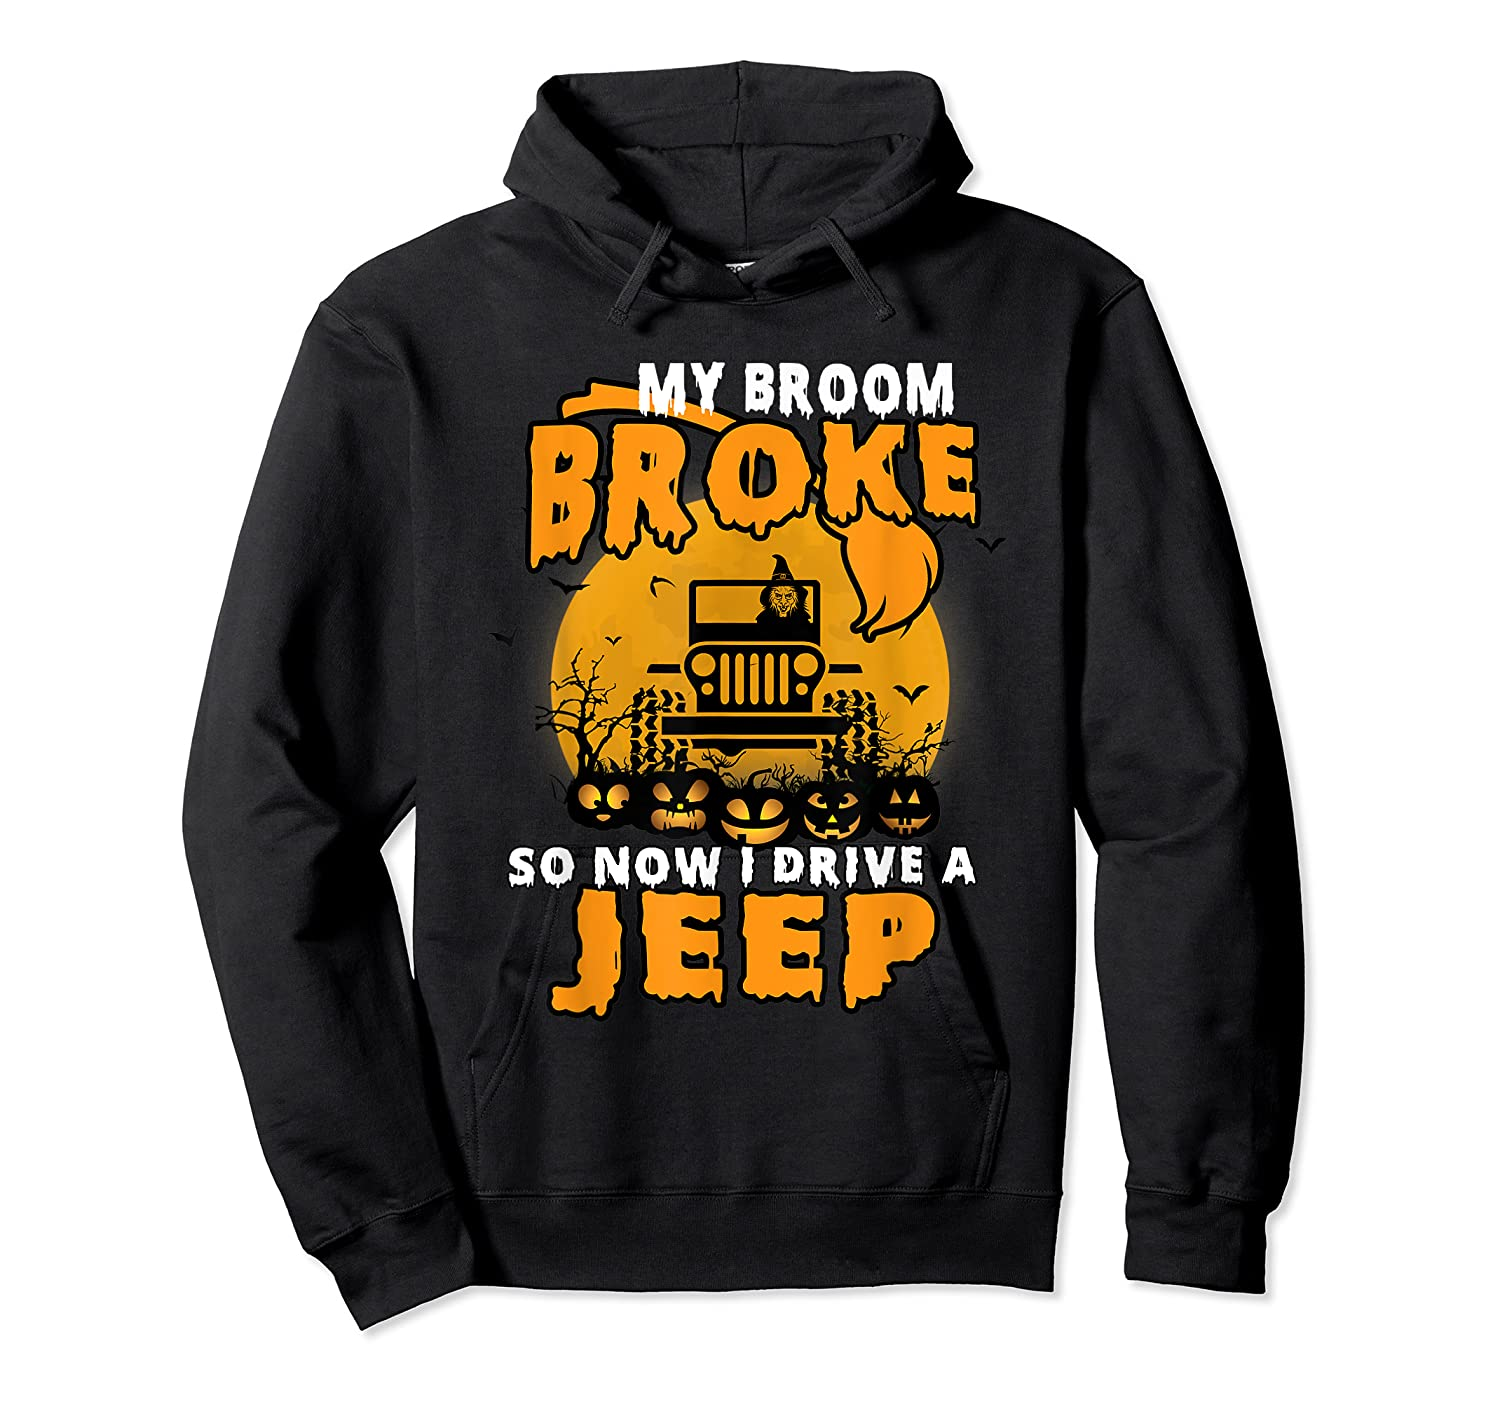 My Broom Broke So Now I Drive A Jeep Funny Halloween Costume Shirts Unisex Pullover Hoodie